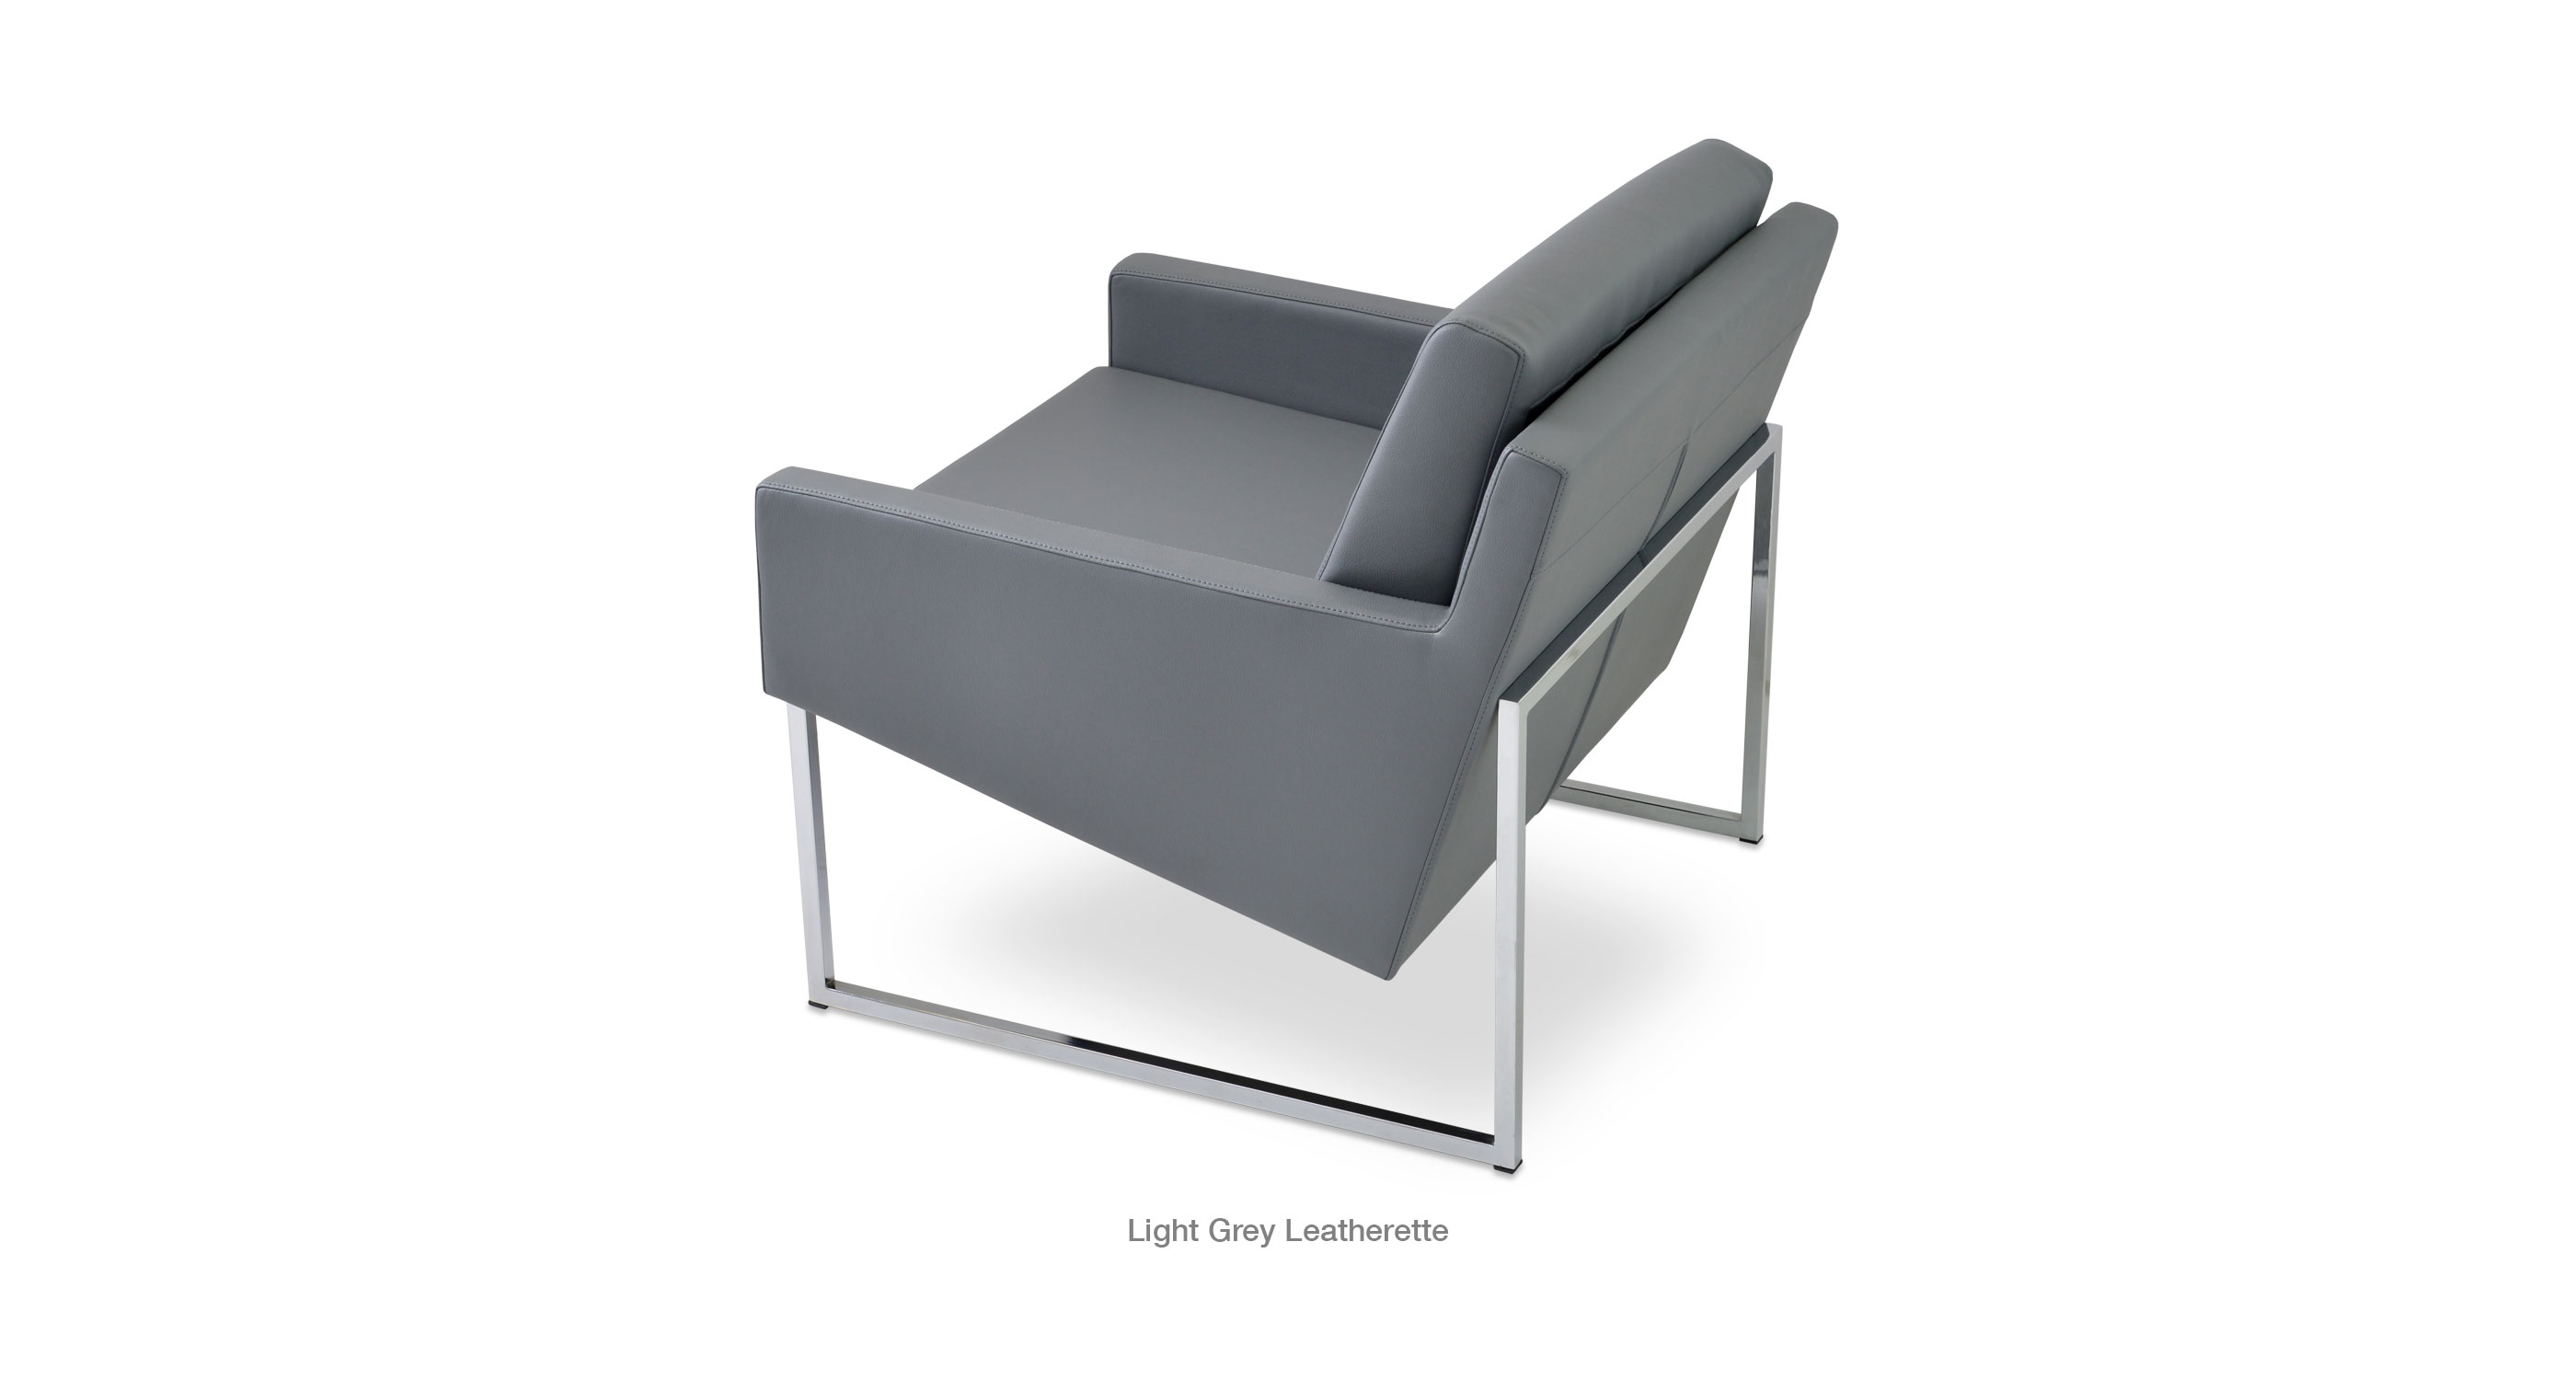 Nova Chrome Light Leatherette